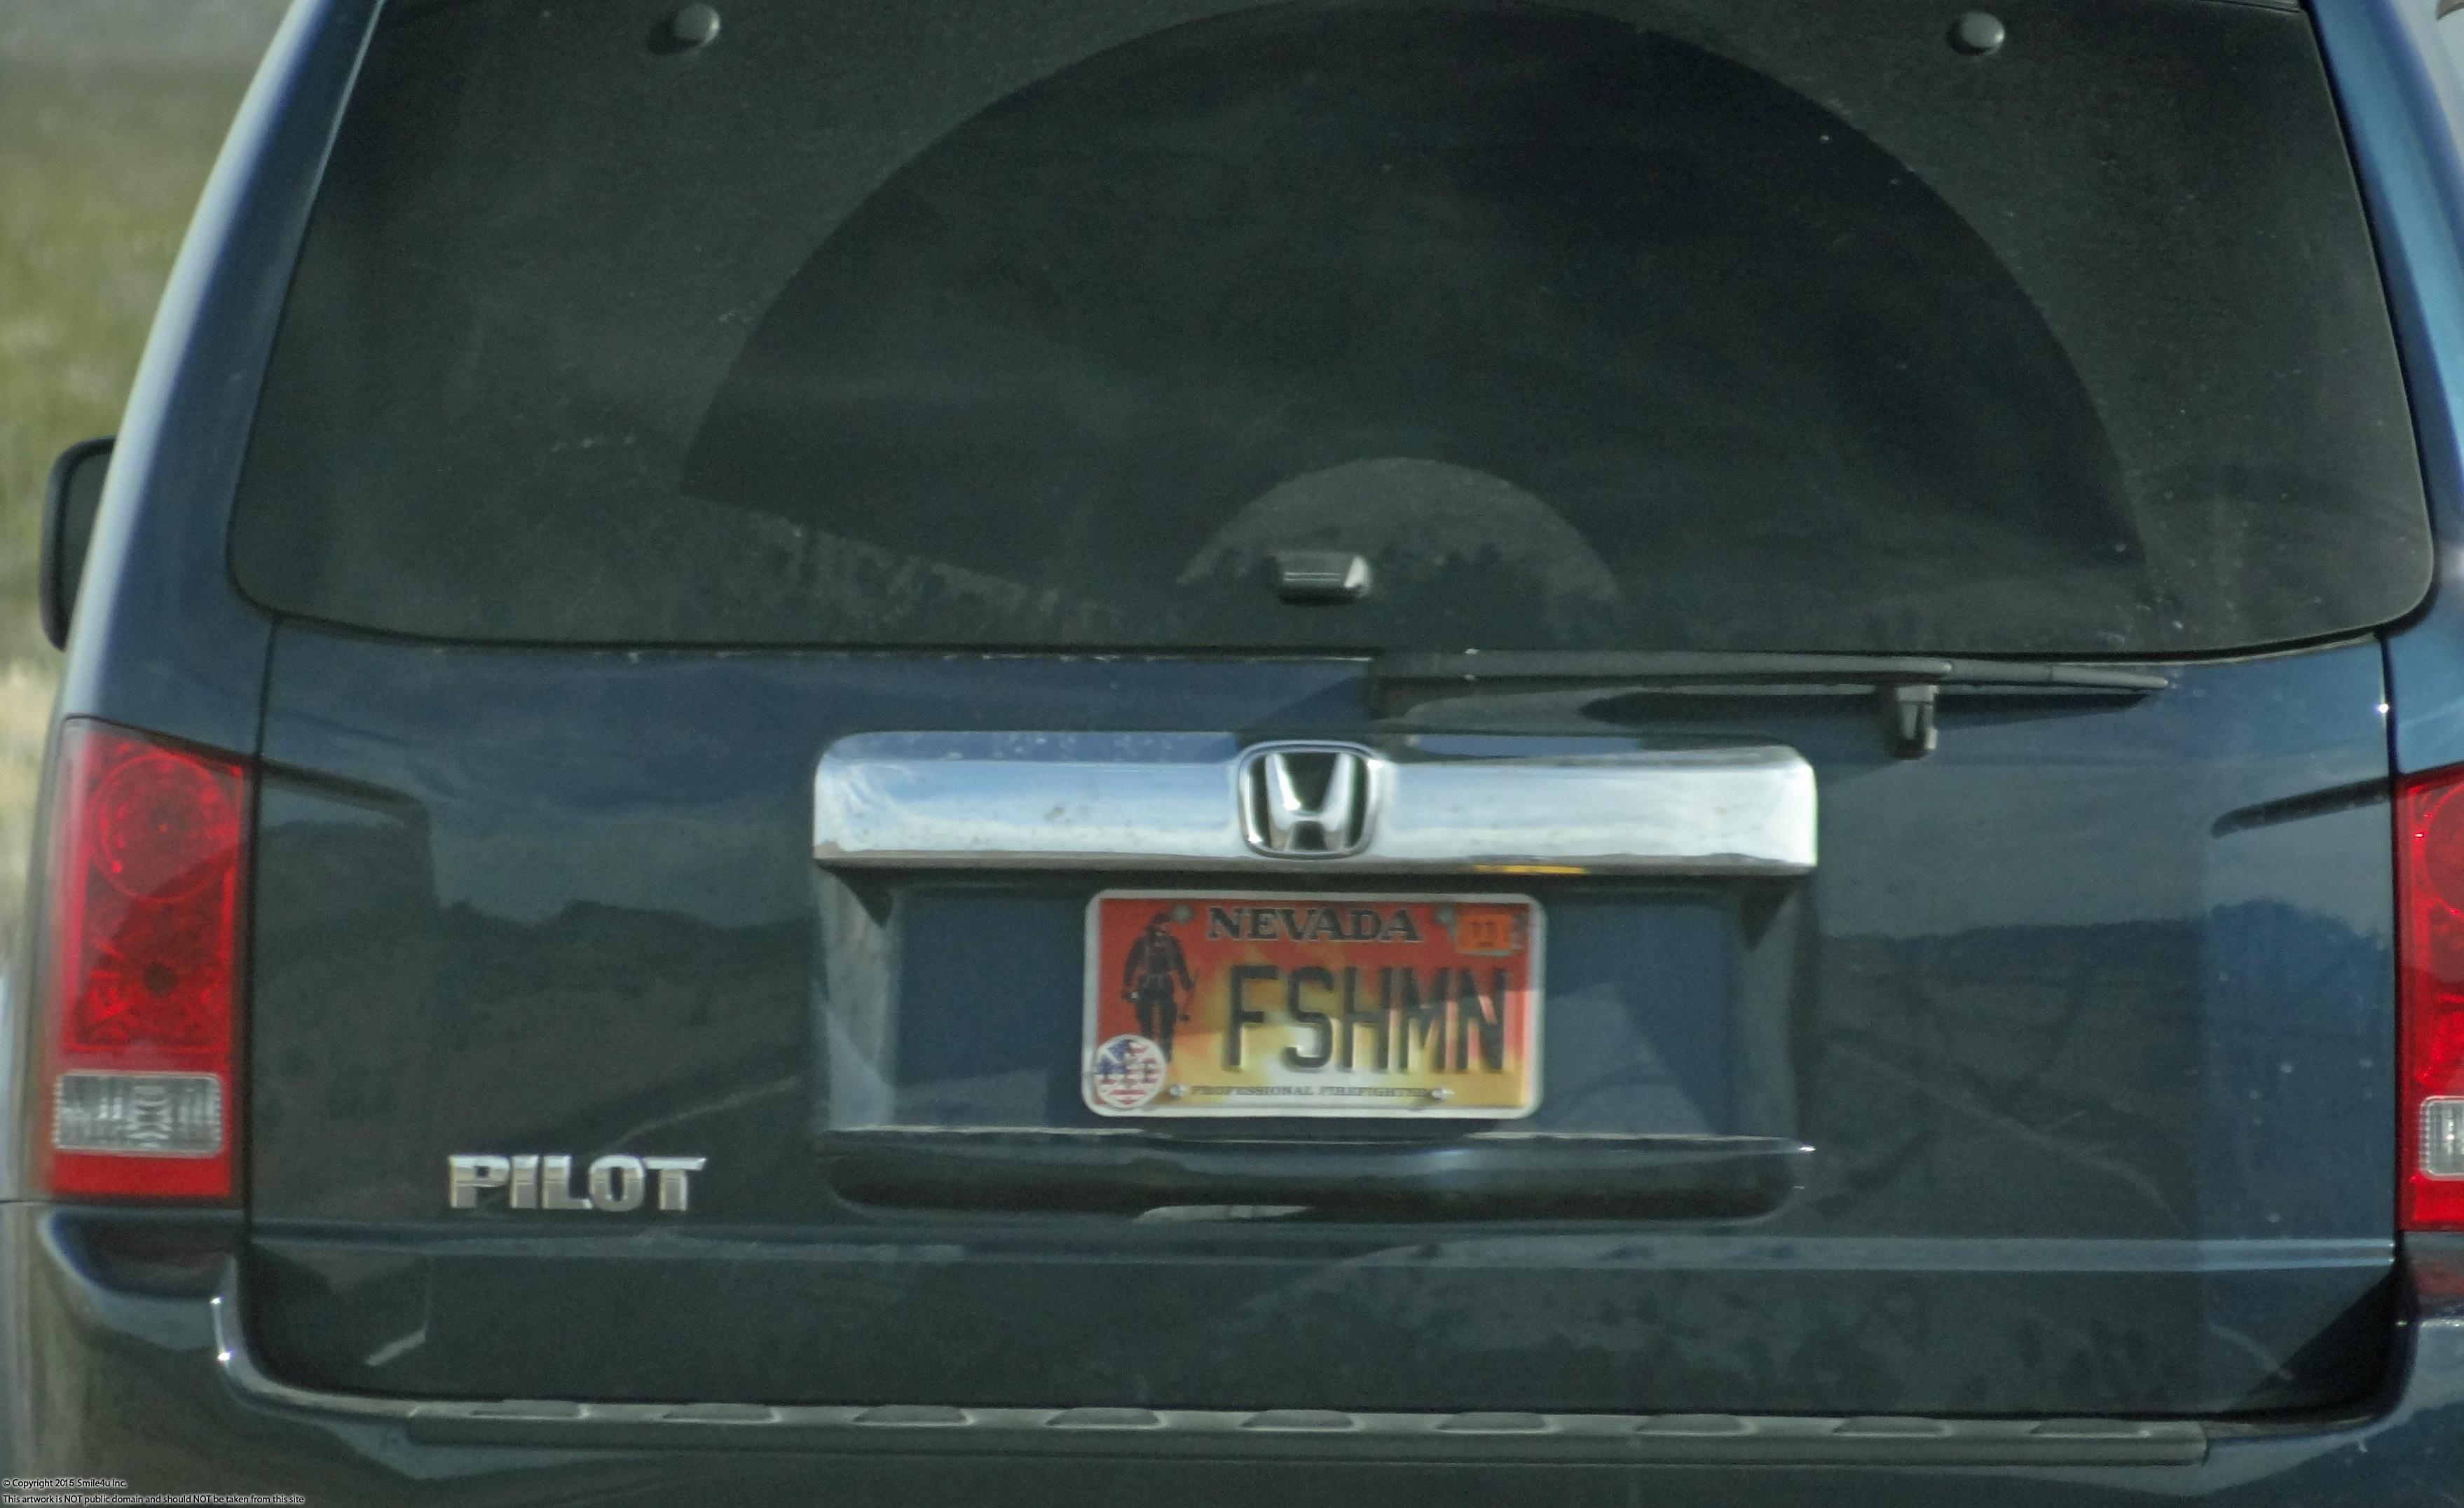 687658_watermarked_386853_watermarked_Nevada Fisherman license plate.jpg